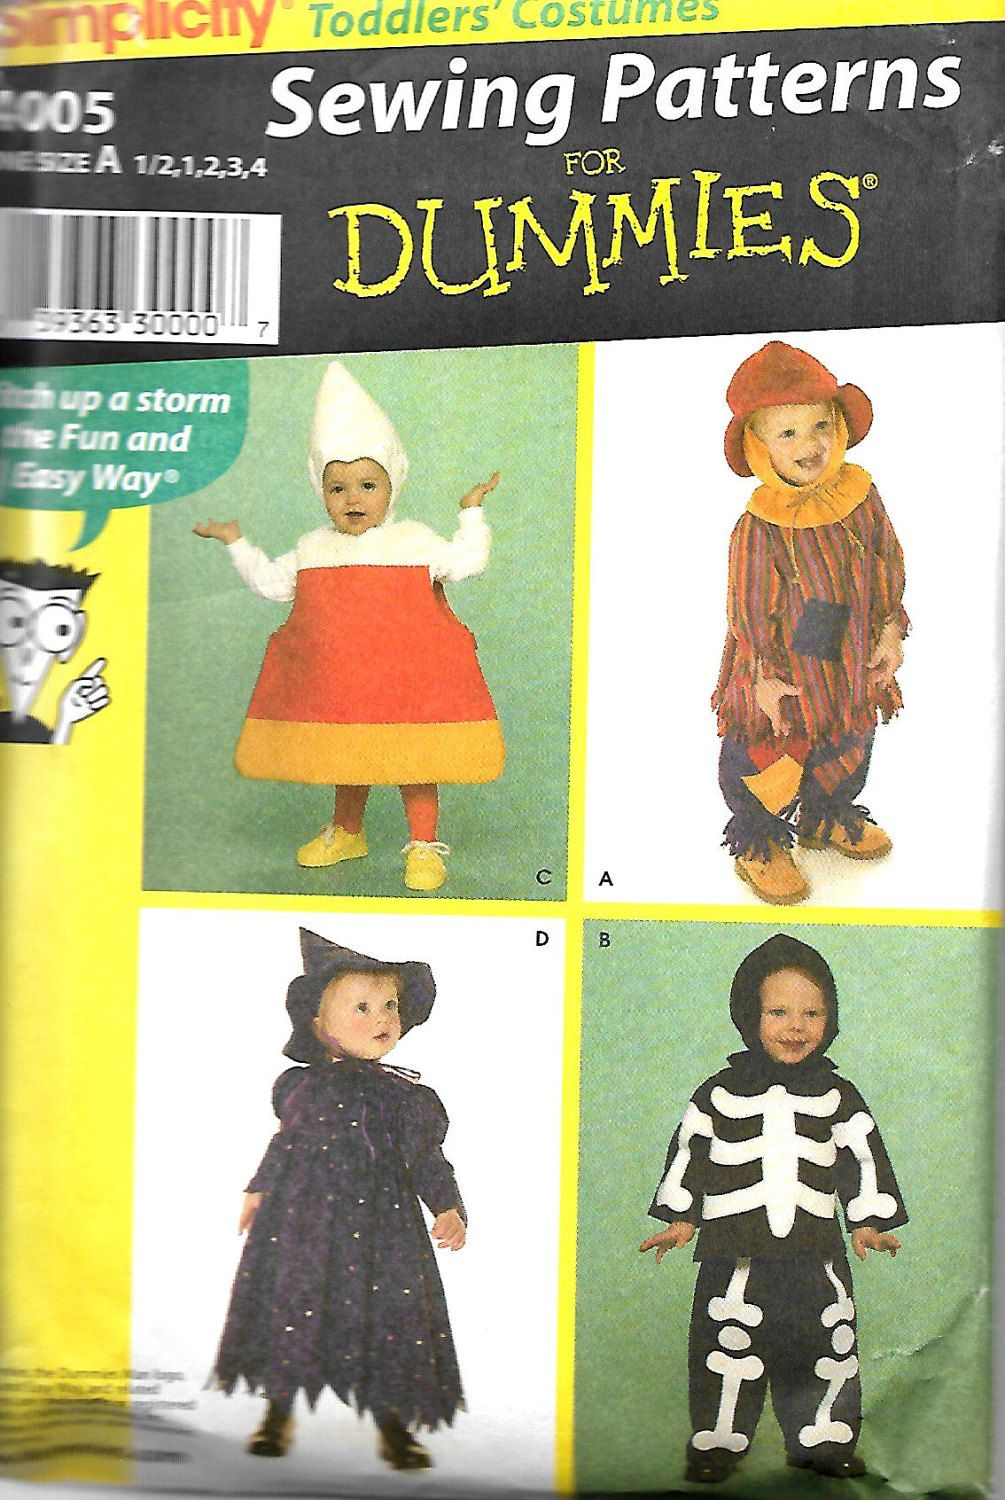 Simplicity 4005 toddler costumes sewing patterns for dummies simplicity 4005 toddler costumes sewing patterns for dummies size 12 4 jeuxipadfo Choice Image